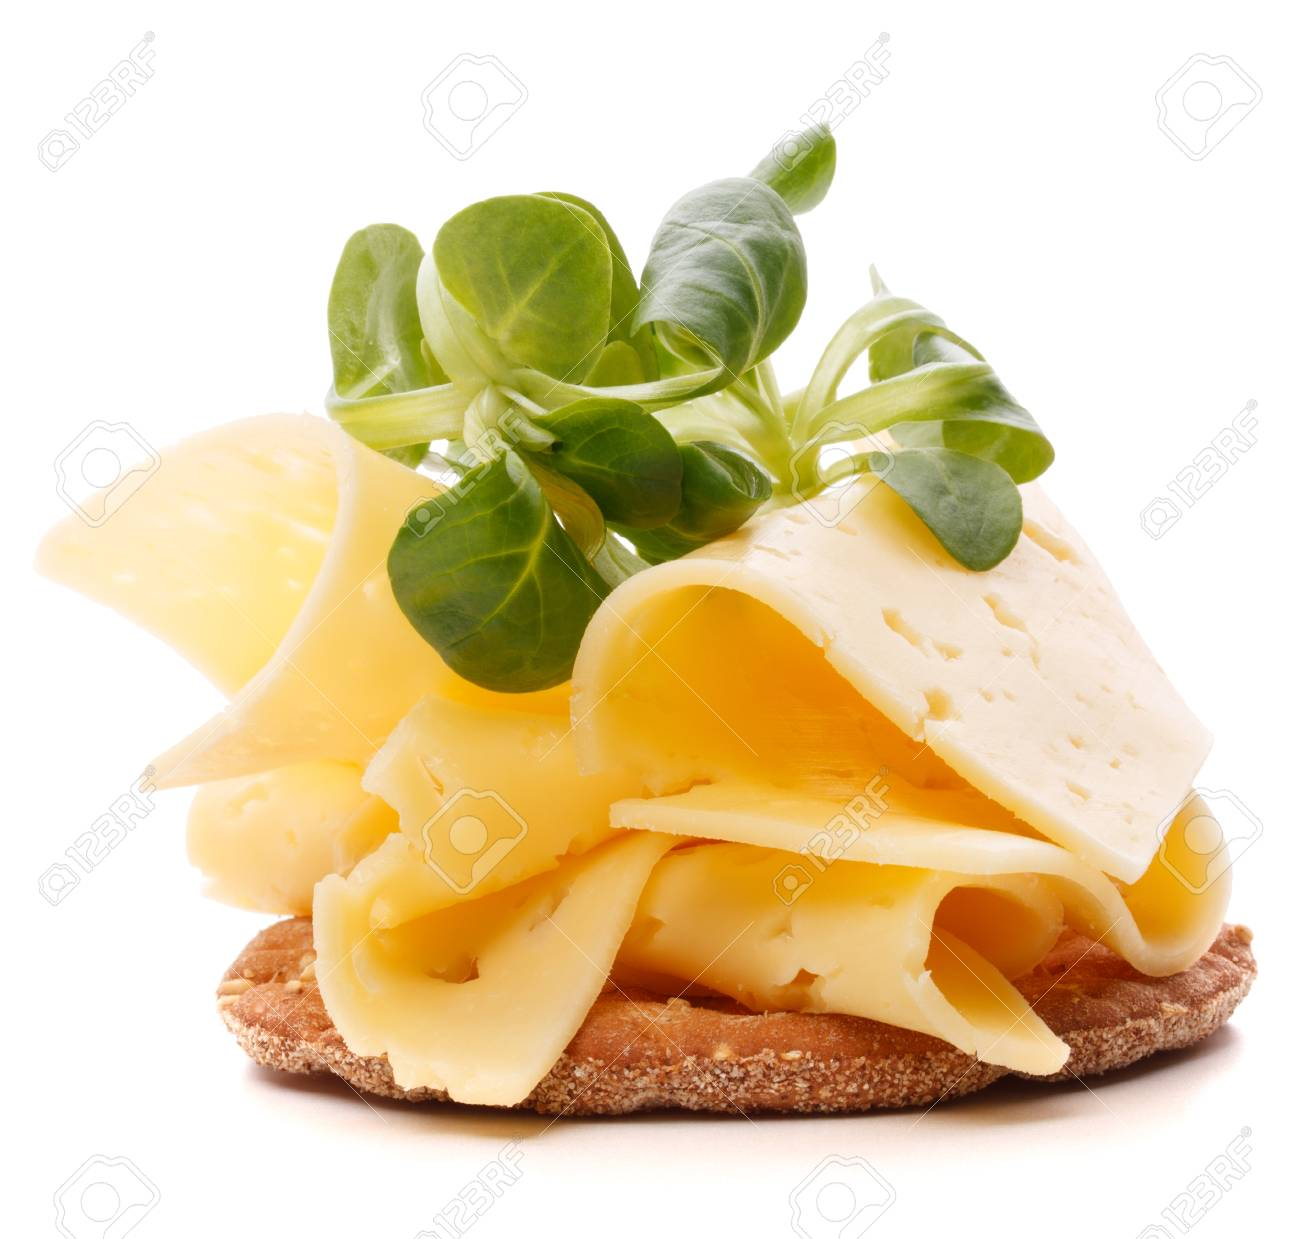 Cheese sandwich isolated on white background - 28551556